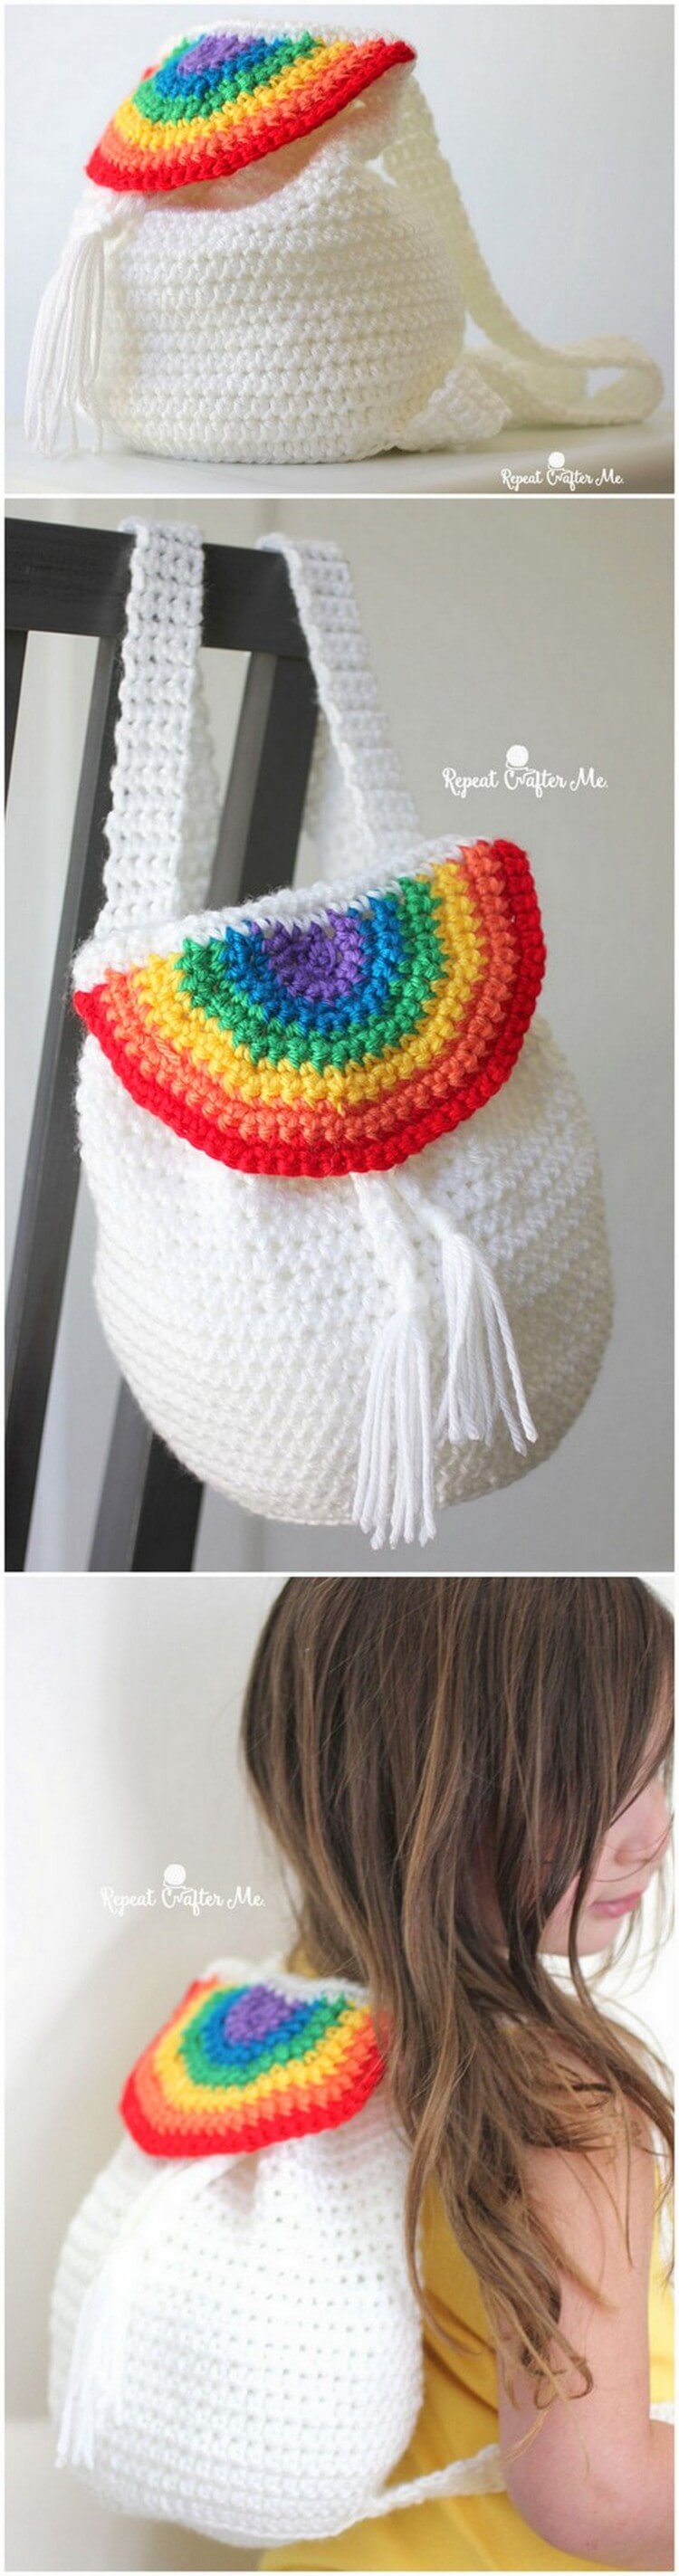 Crochet Backpack Pattern (10)